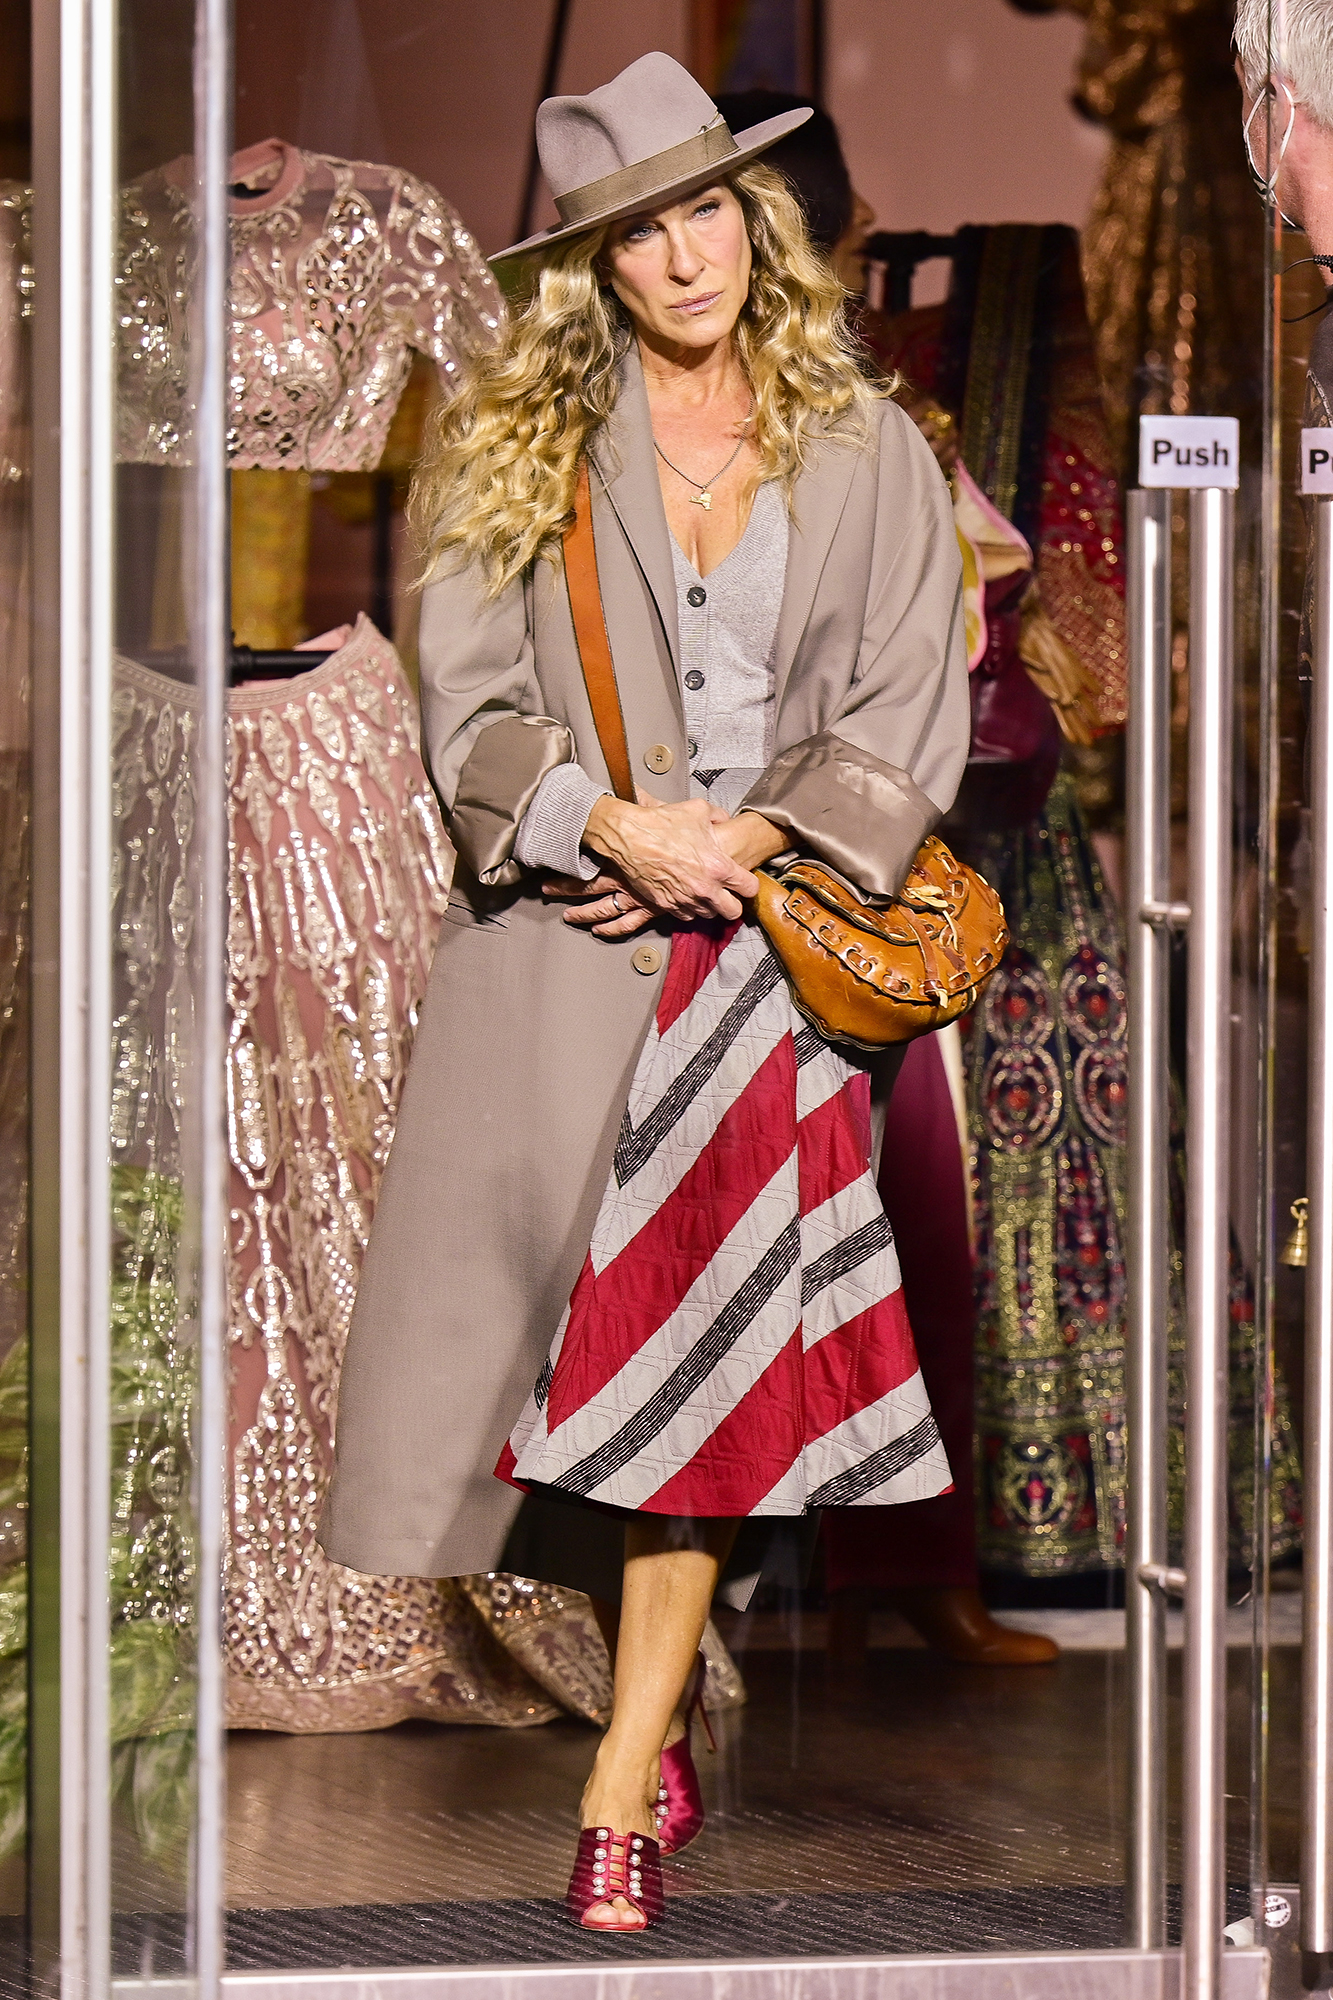 """Sarah Jessica Parker seen on the set of """"And Just Like That..."""" the follow up series to """"Sex and the City"""" in SoHo on September 27, 2021 in New York City."""